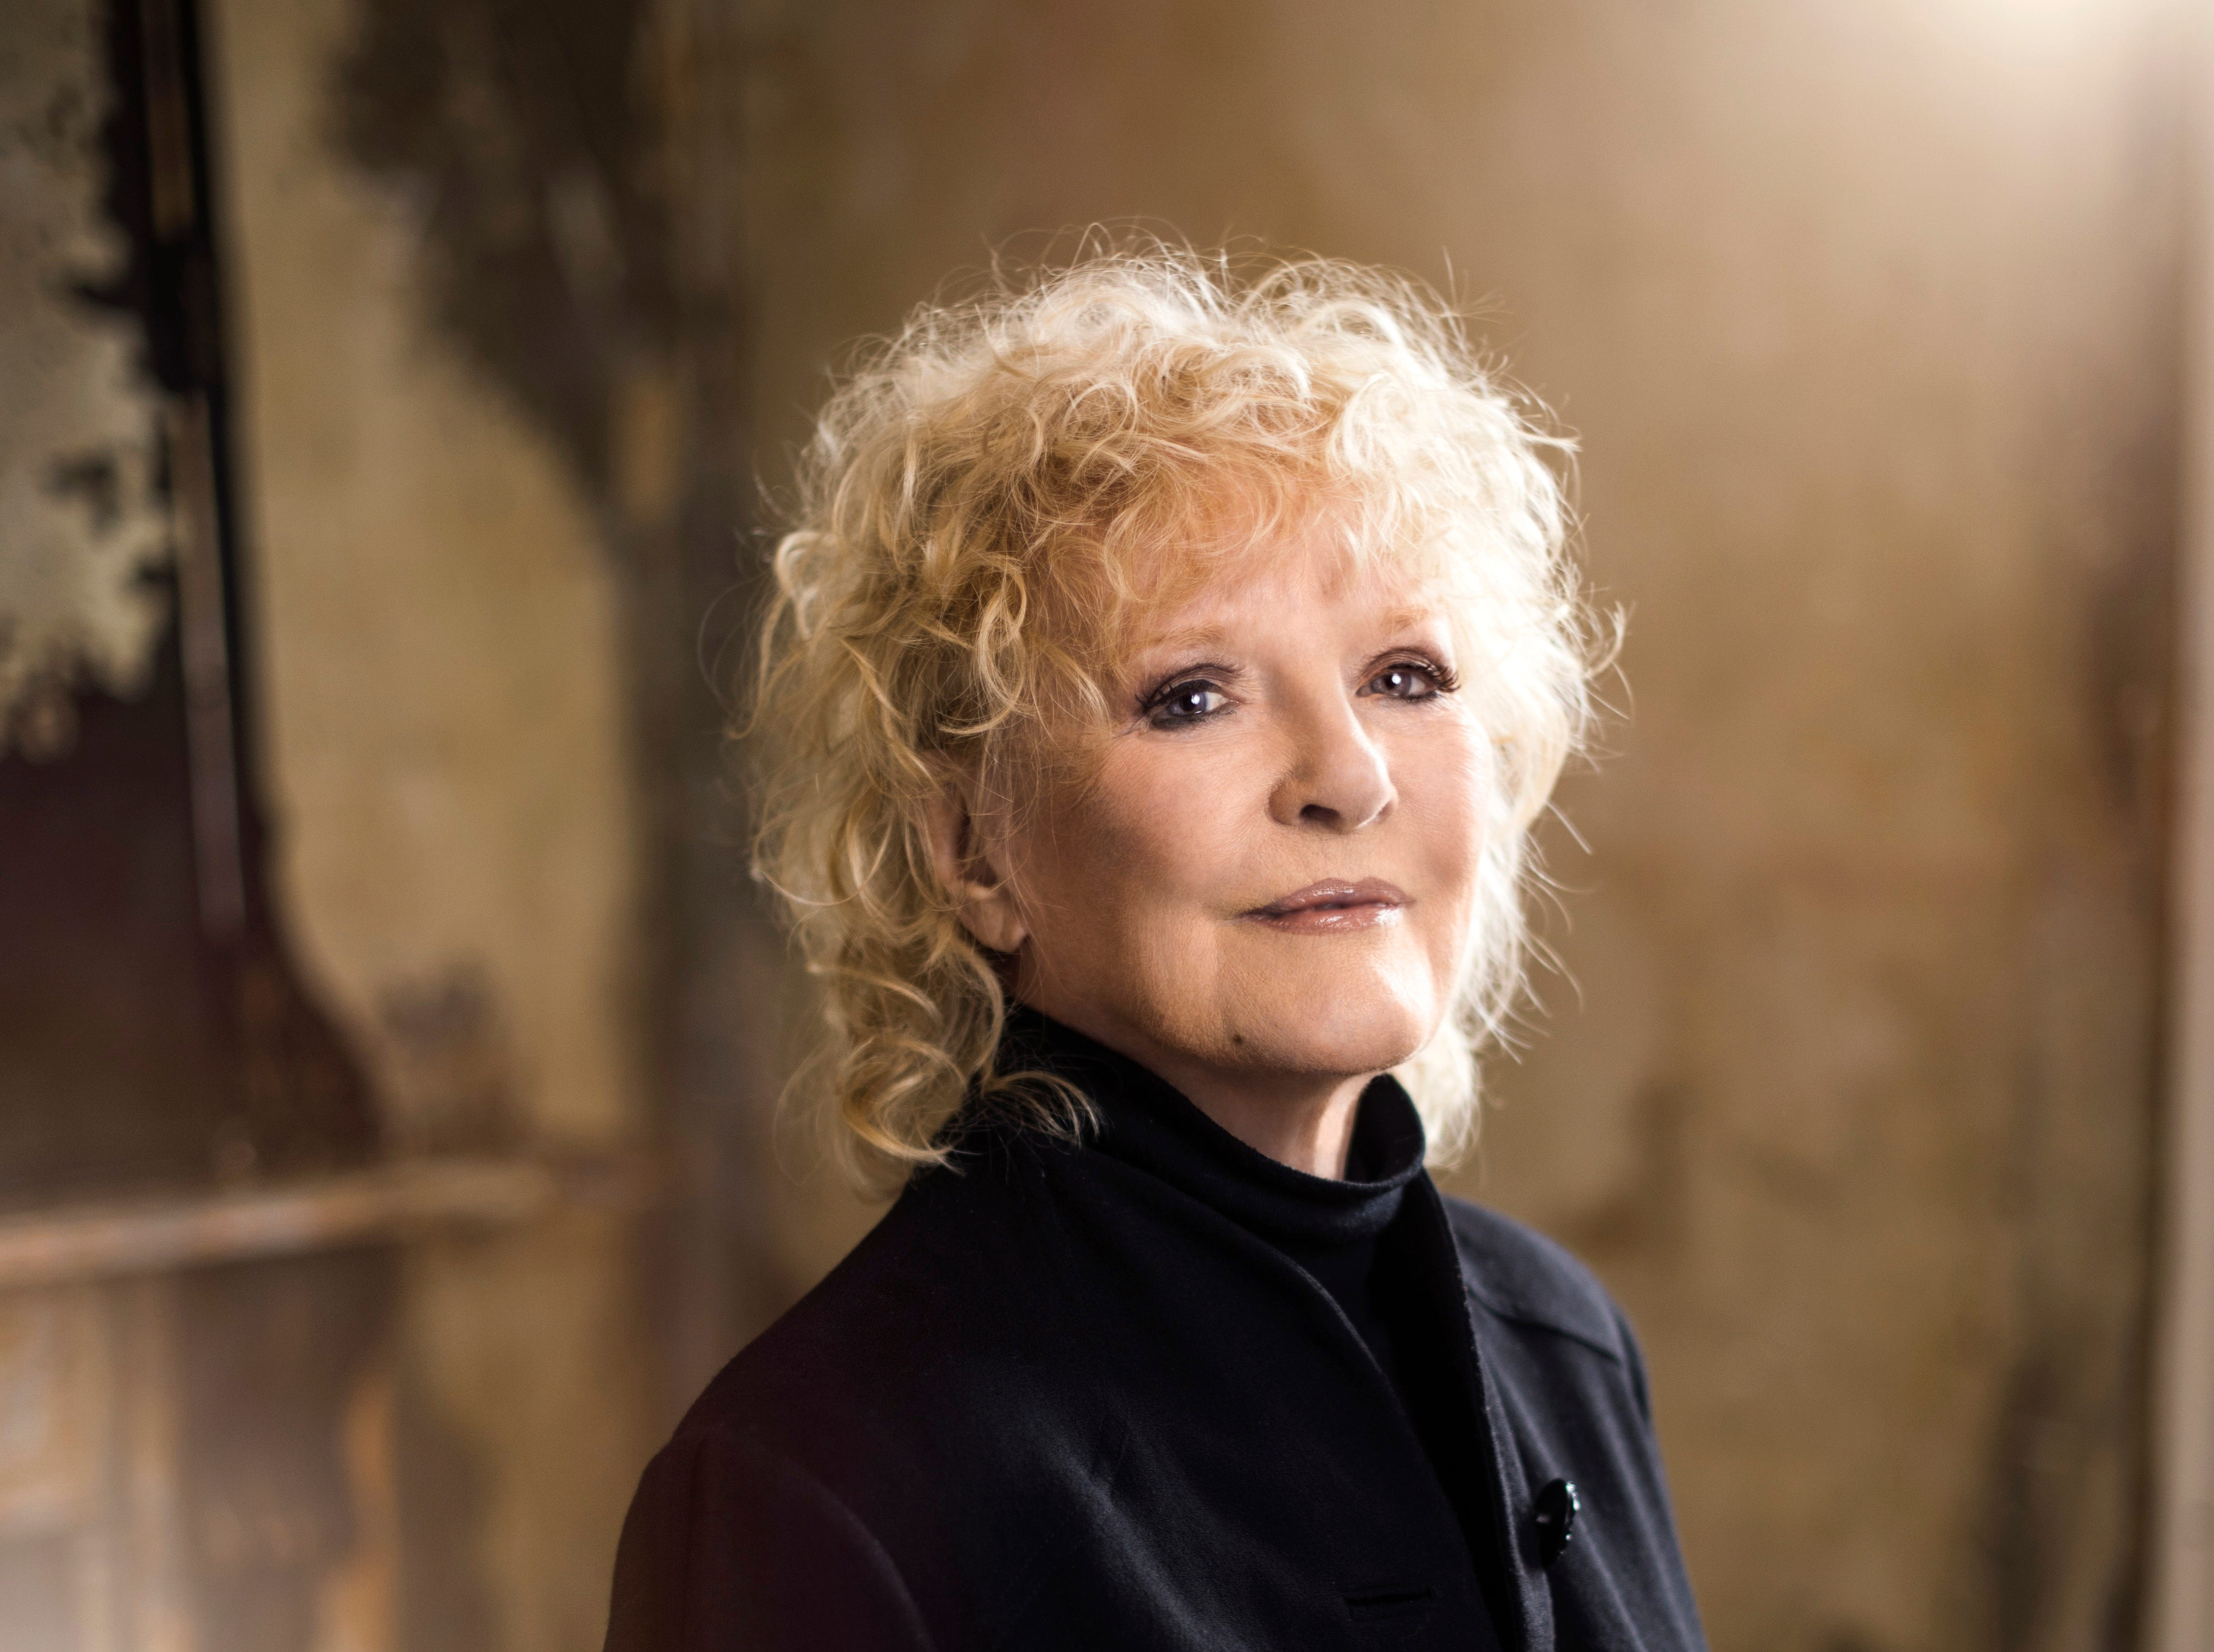 Petula Clark has one of the longest-lasting careers in show business. She began performing at age 9; she turned 86 on Nov. 15, 2018.